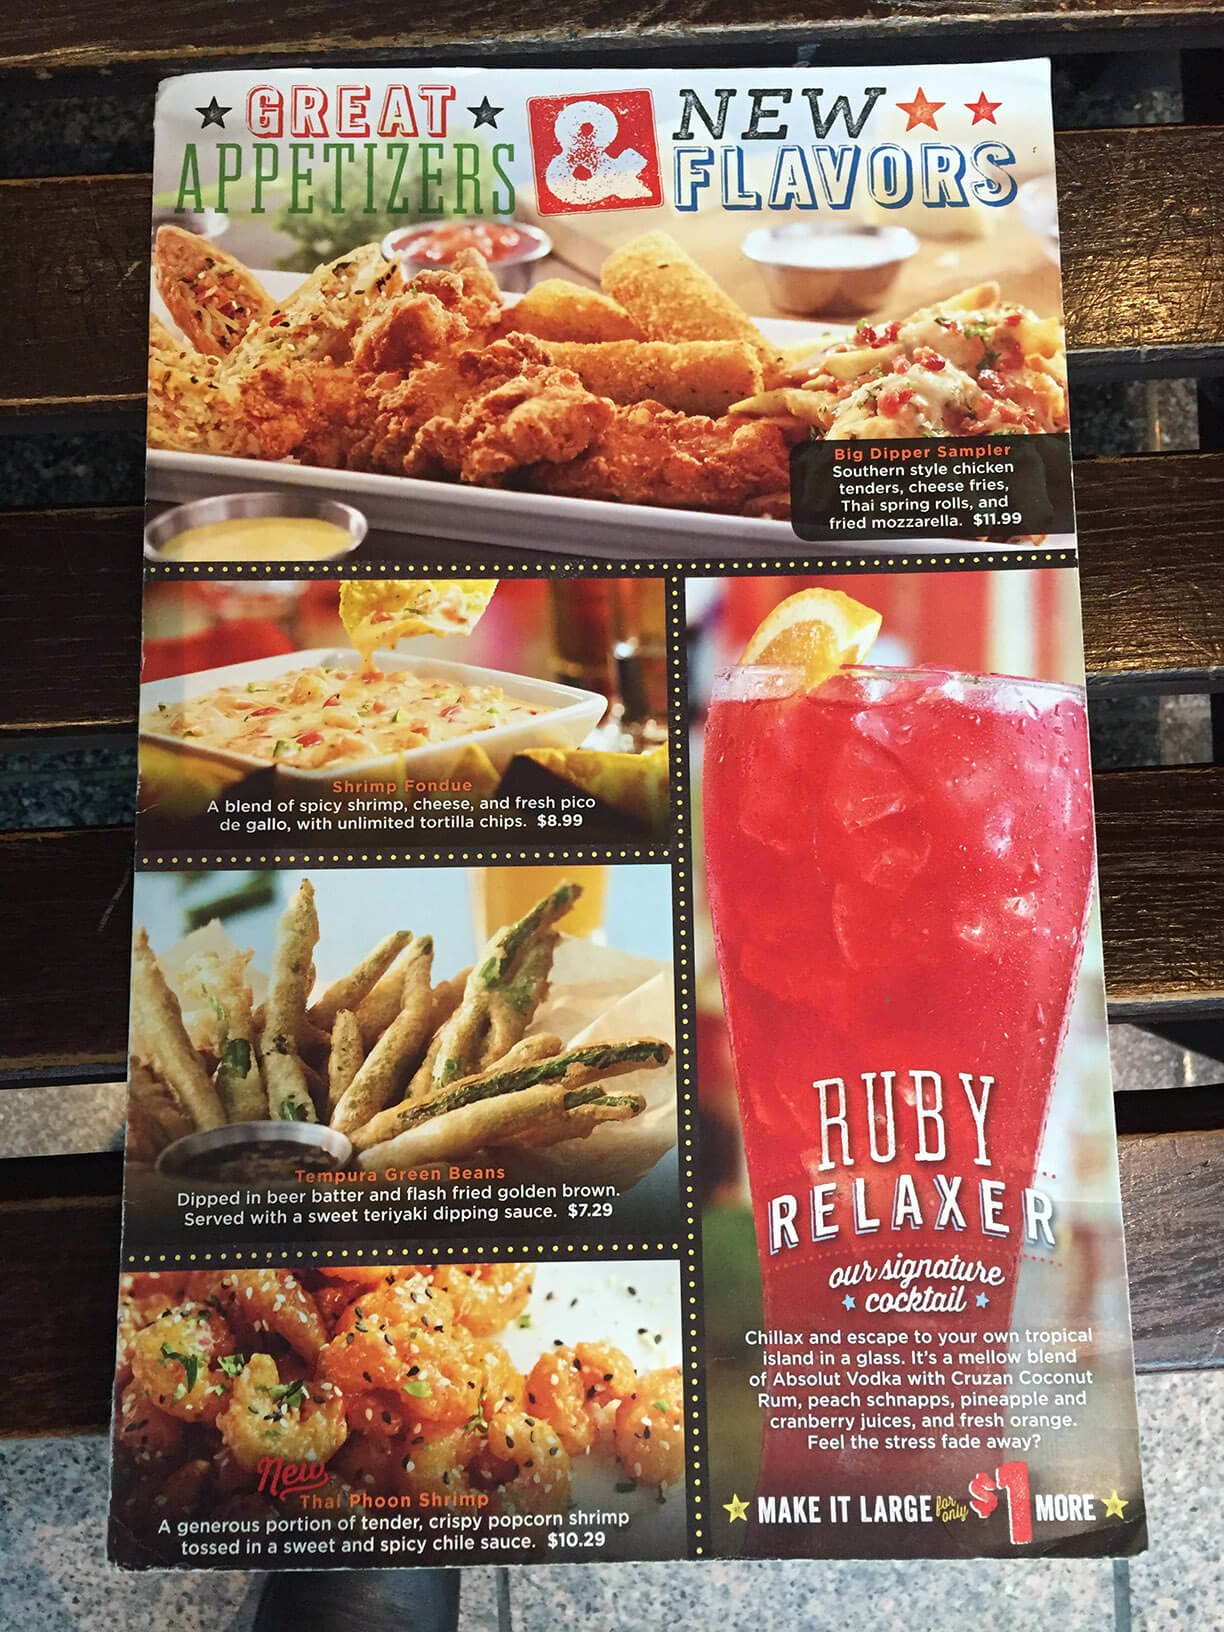 Ruby Tuesday Menu Prices 2017 Meal Items Details Amp Cost